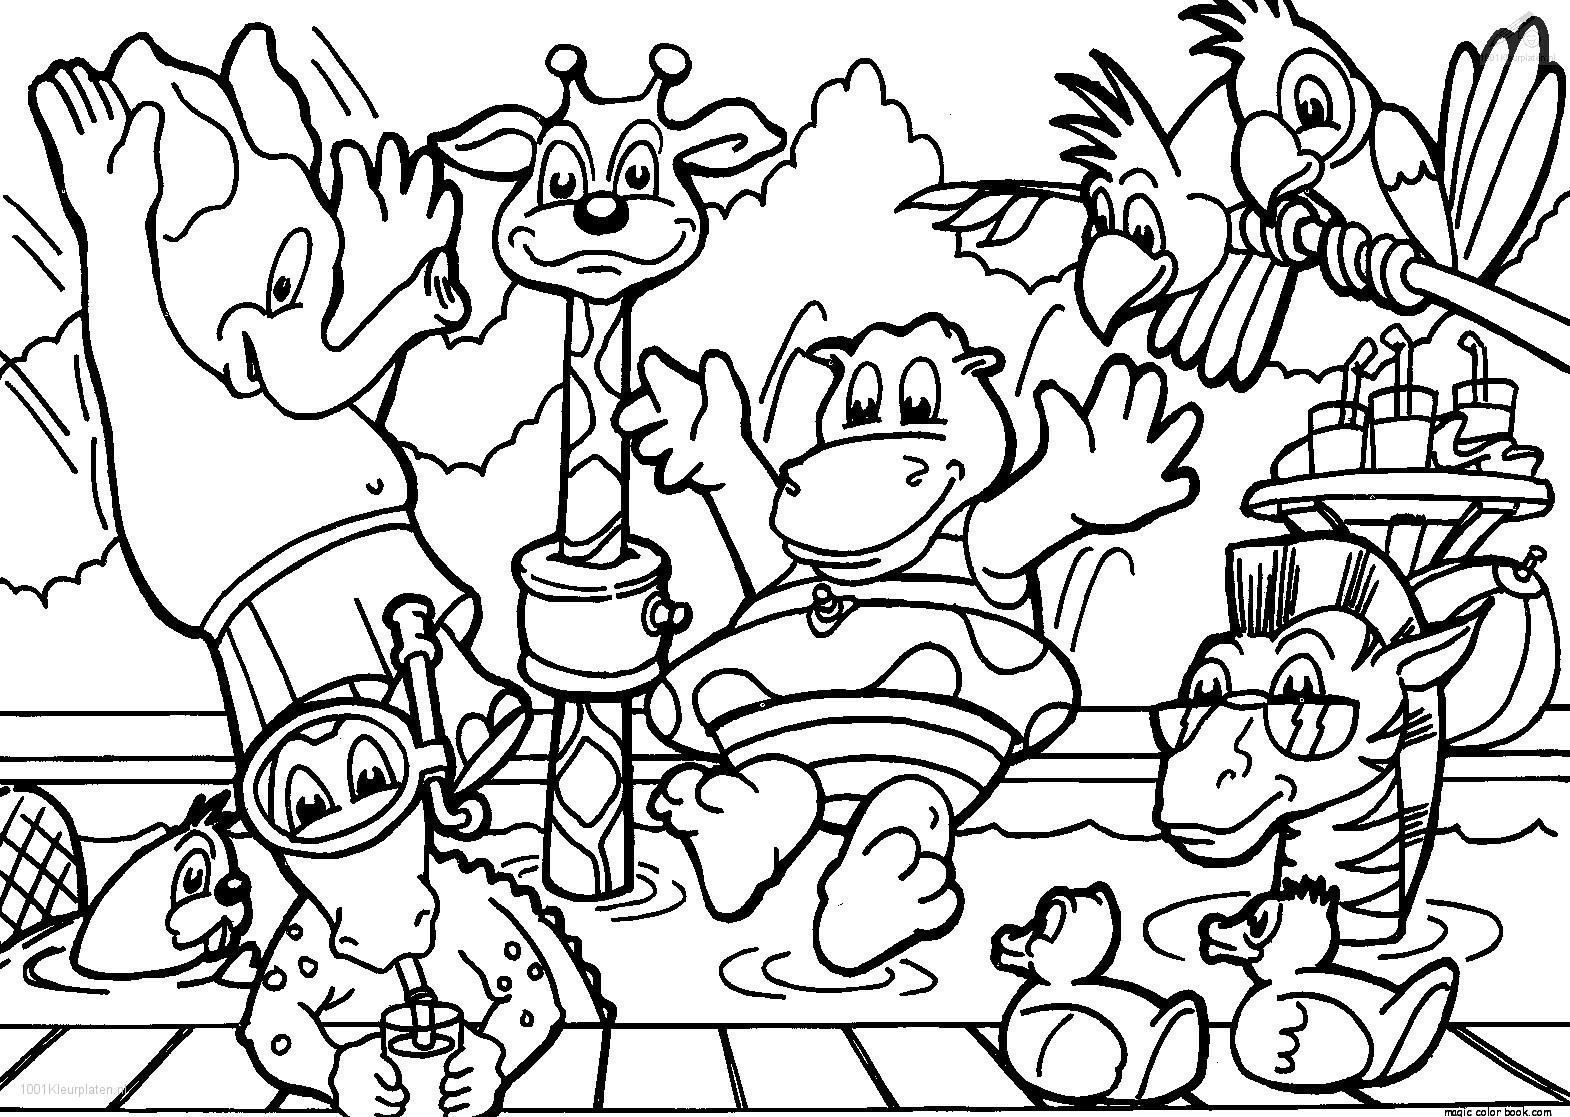 Zoo Animals Coloring Pages Amazing Zoo Animal Coloring Pages Animals Page Colouring Free For